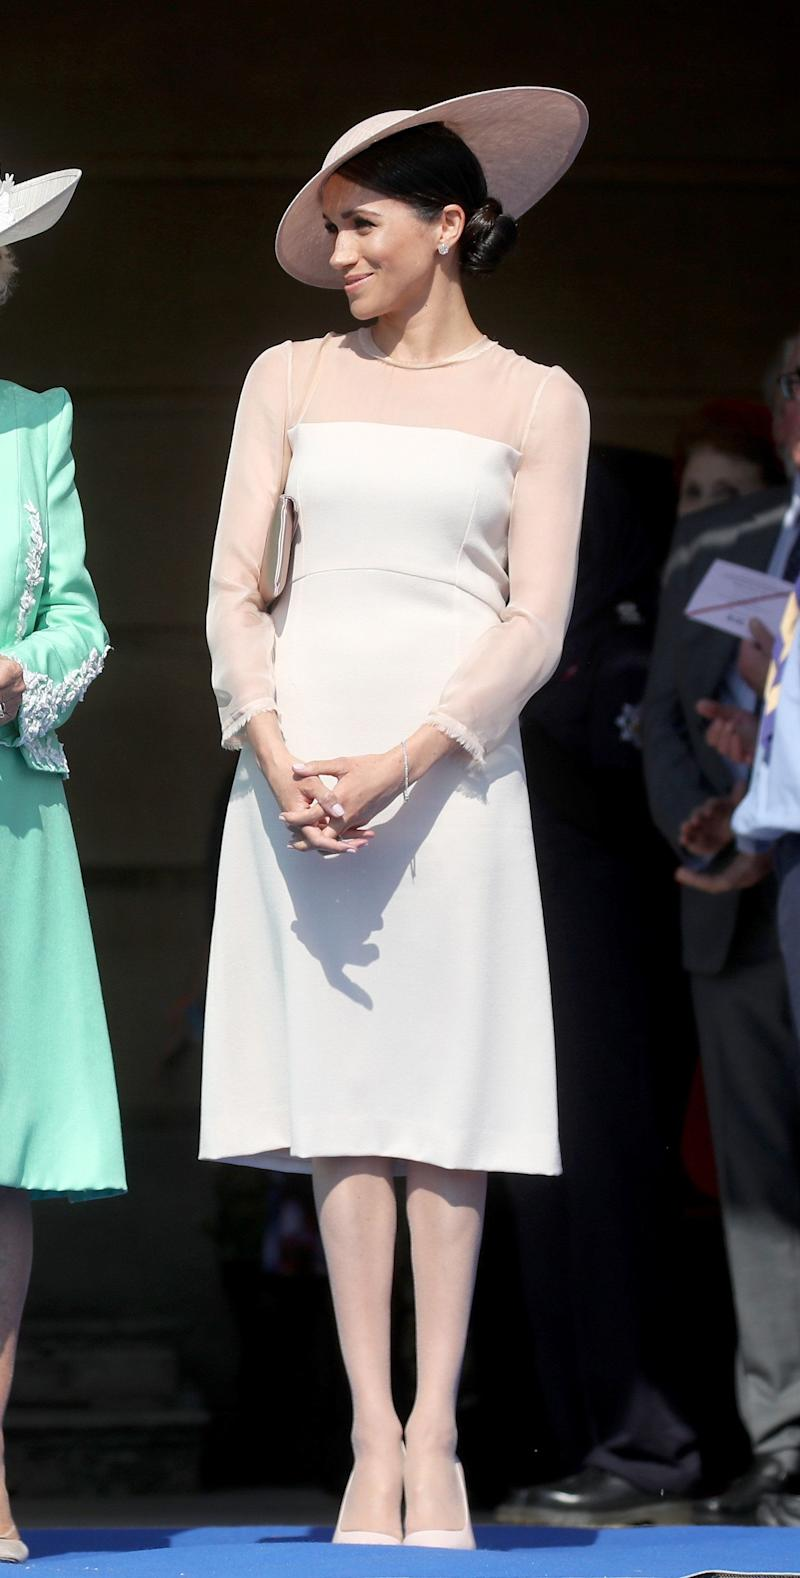 The duchess attends The Prince of Wales' 70th Birthday Patronage Celebration held at Buckingham Palace on May 22.